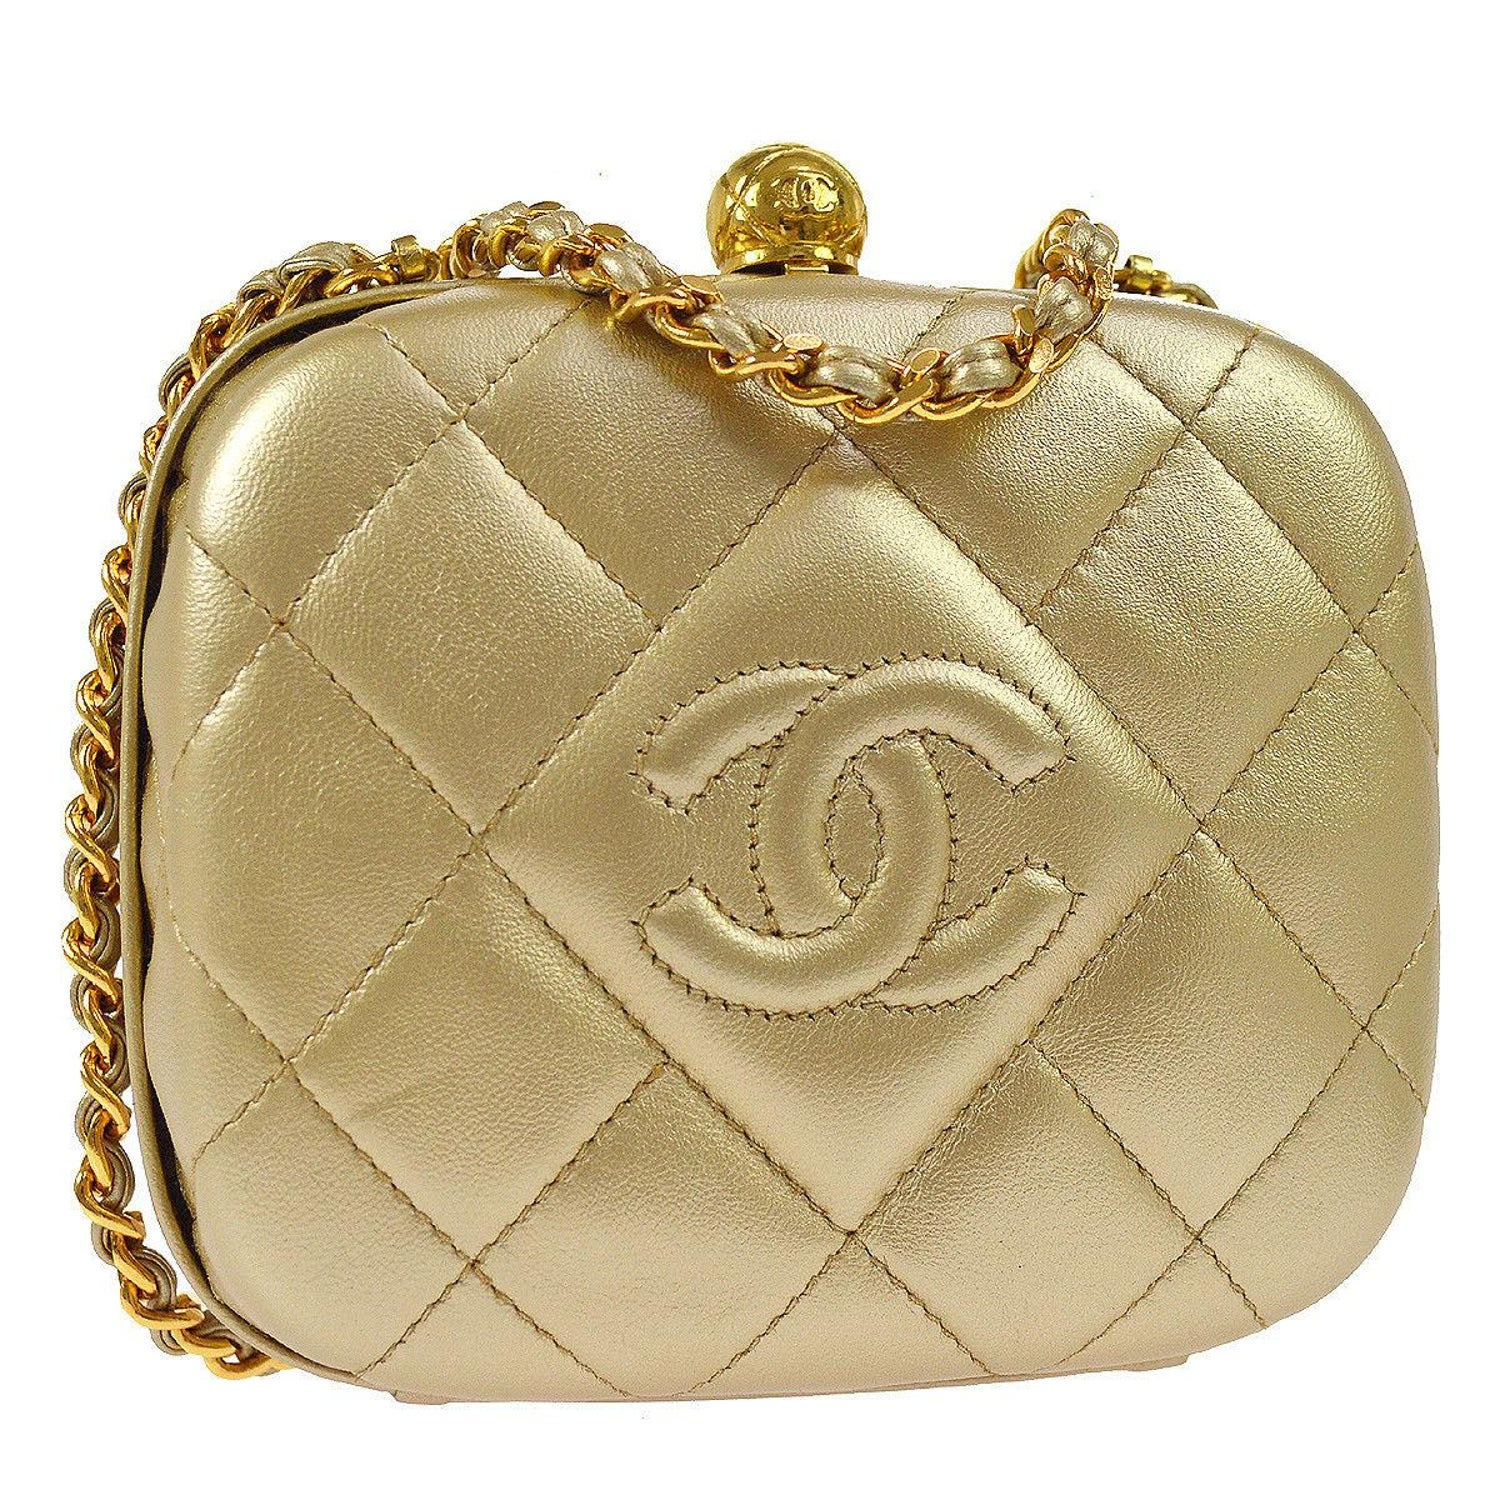 0fcca10e227 Chanel Gold Leather Kisslock Evening Small Party 2 in 1 Flap Shoulder Bag  in Box For Sale at 1stdibs